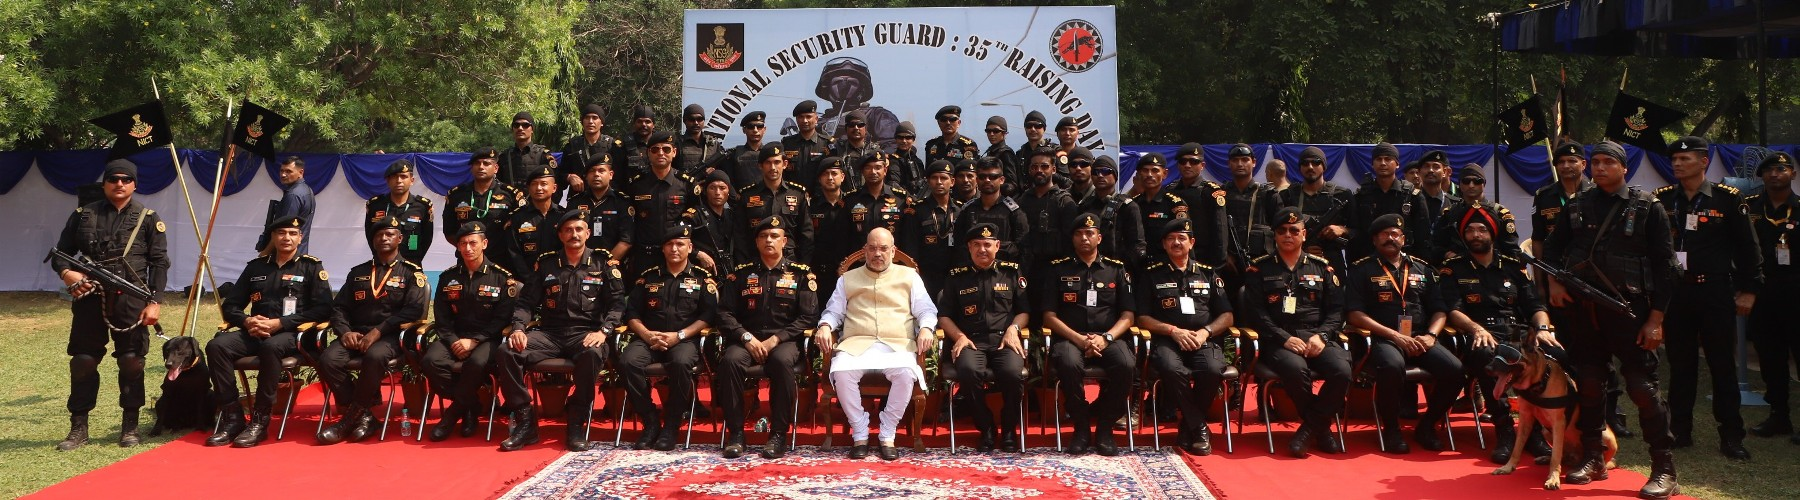 Union Minister of Home Affairs Shri Amit Shah with NSG personnel at NSG Raising Day celebrations in Manesar, Haryana on October 15, 2019